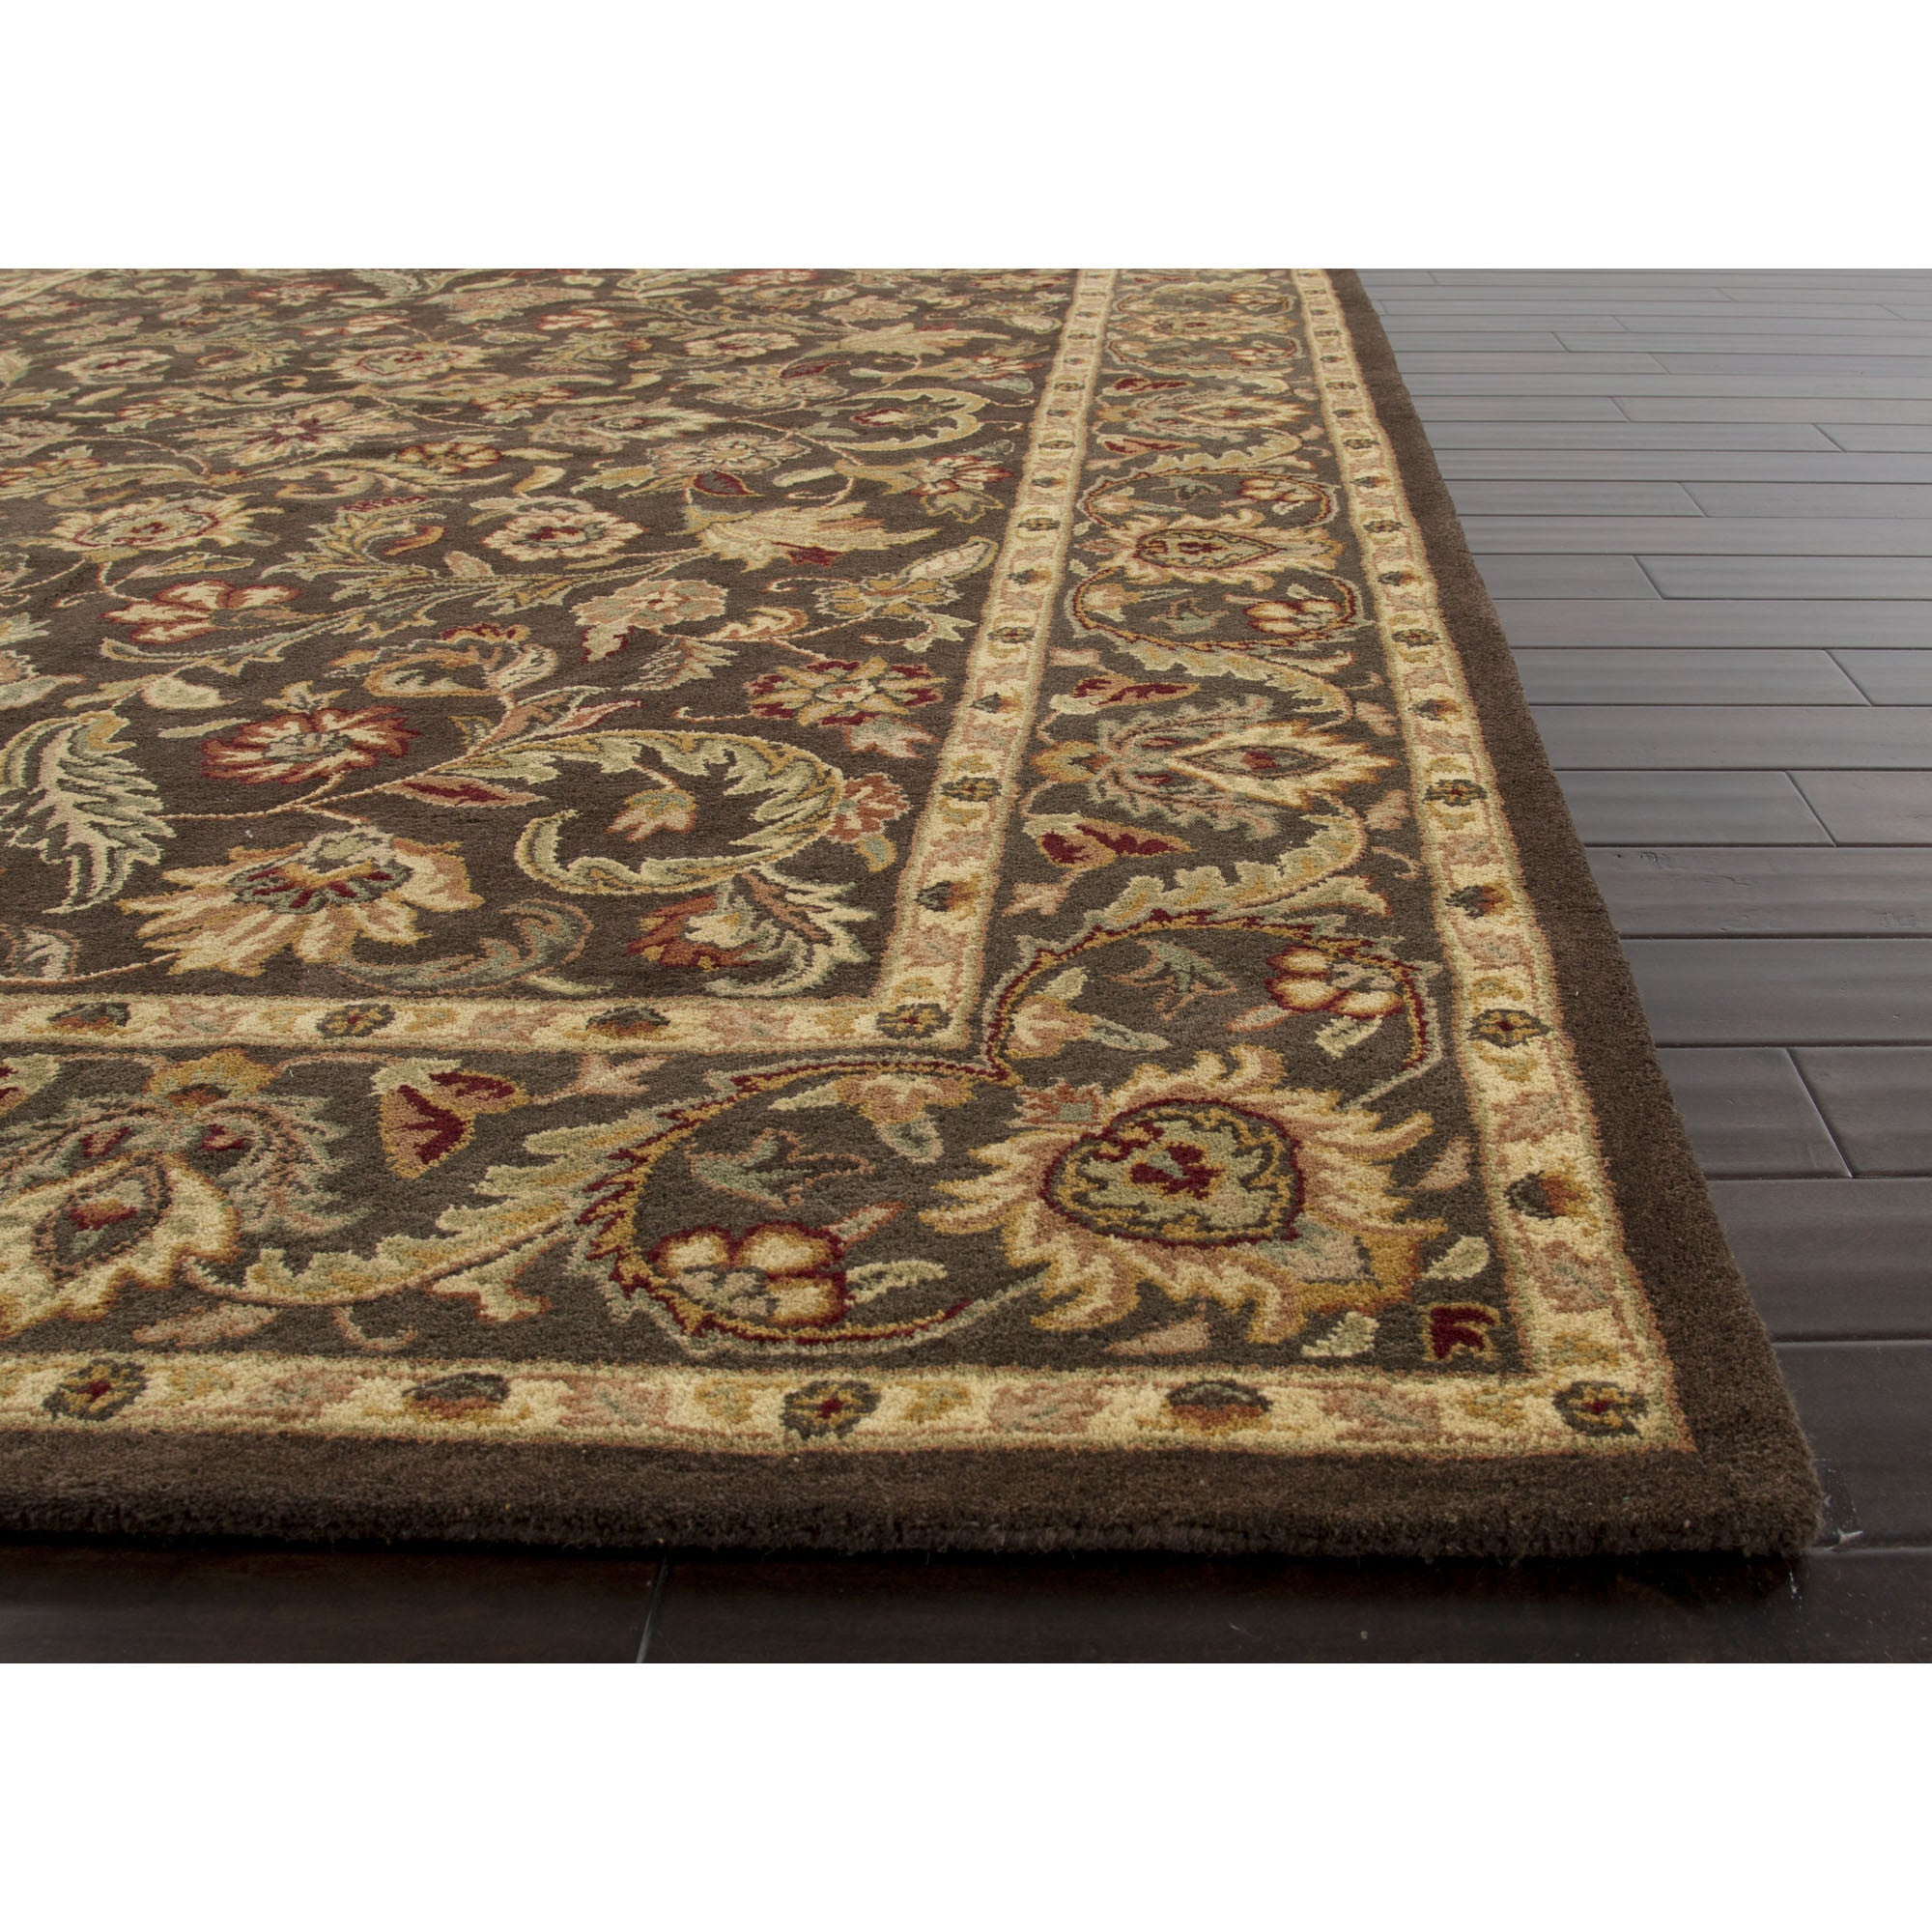 Area Rugs For Under 00